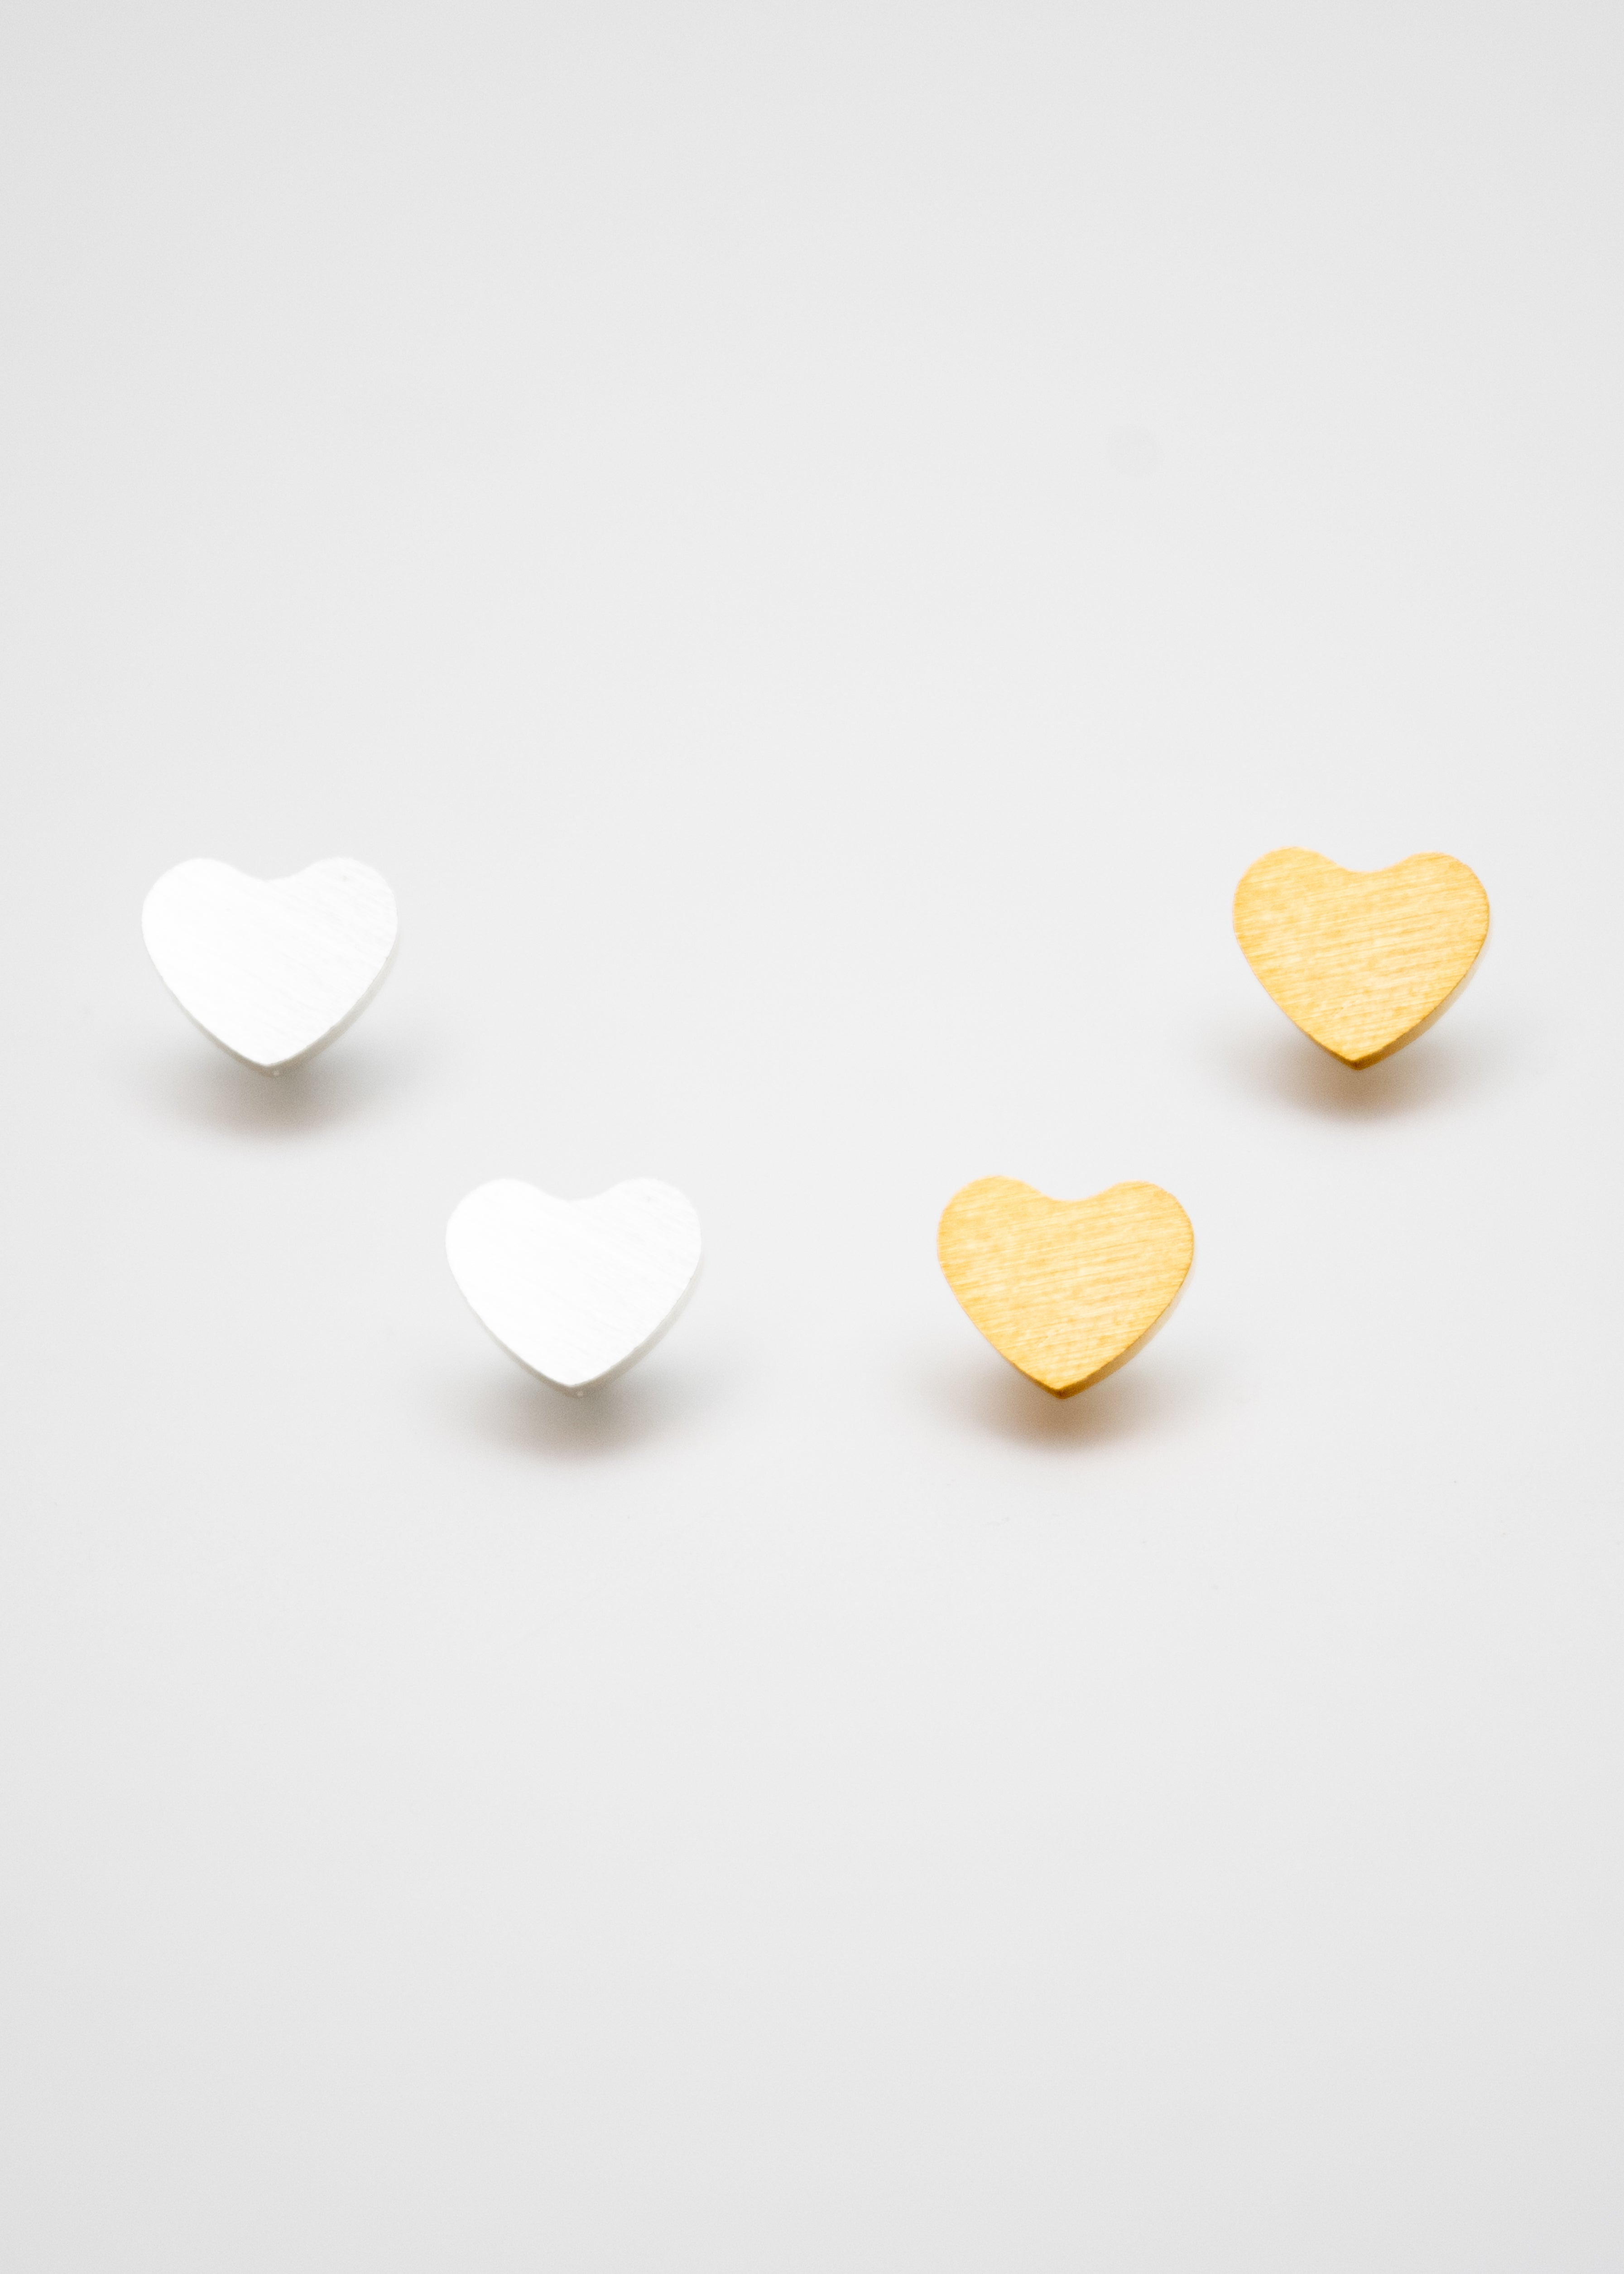 Beck & Boosh Amour Studs Silver and Gold Hearts Stainless Steel